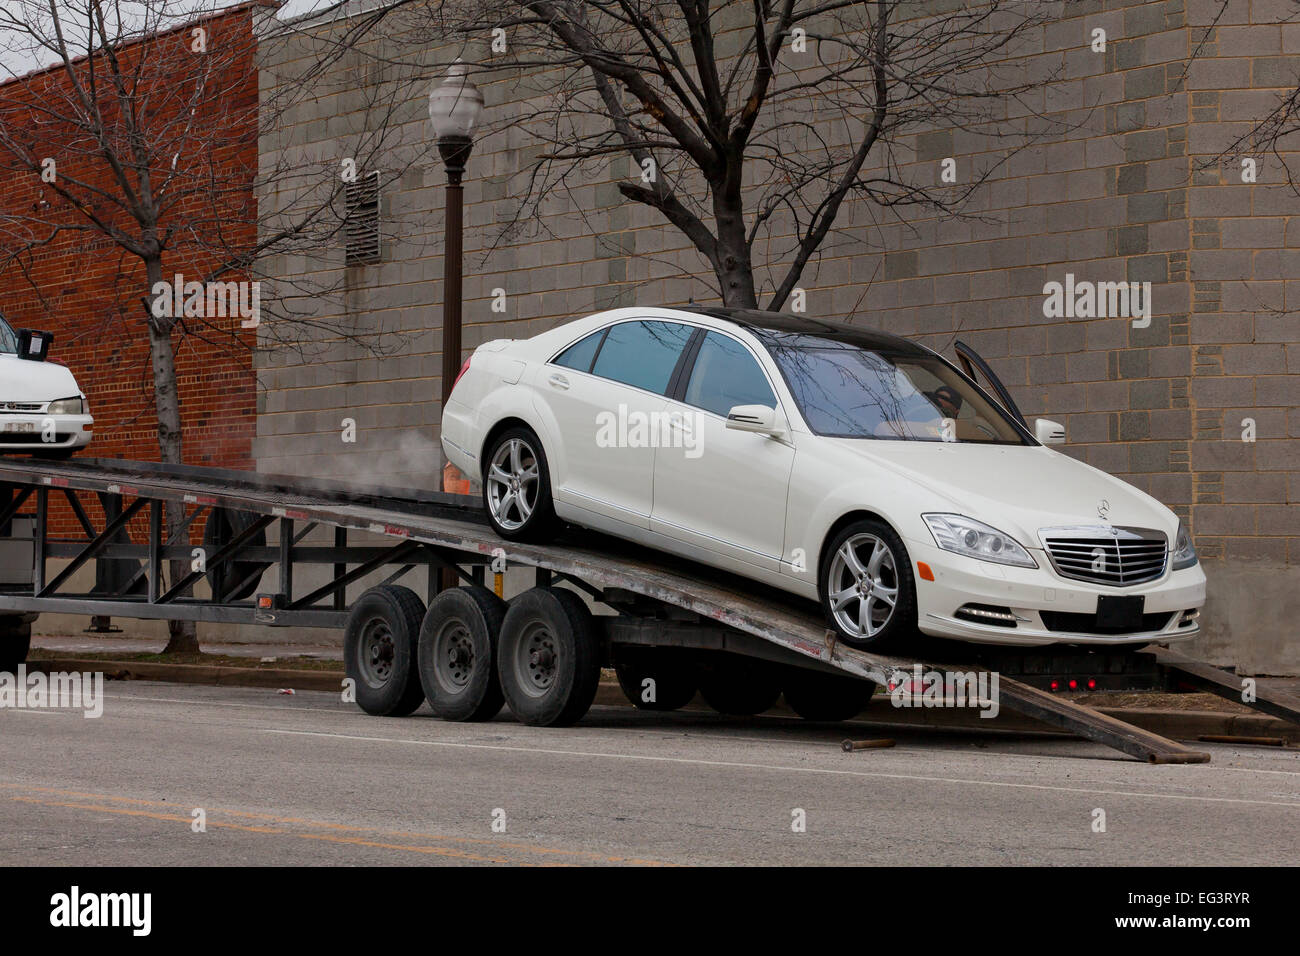 Car Being Loaded On Car Stock Photos Car Being Loaded On Car Stock